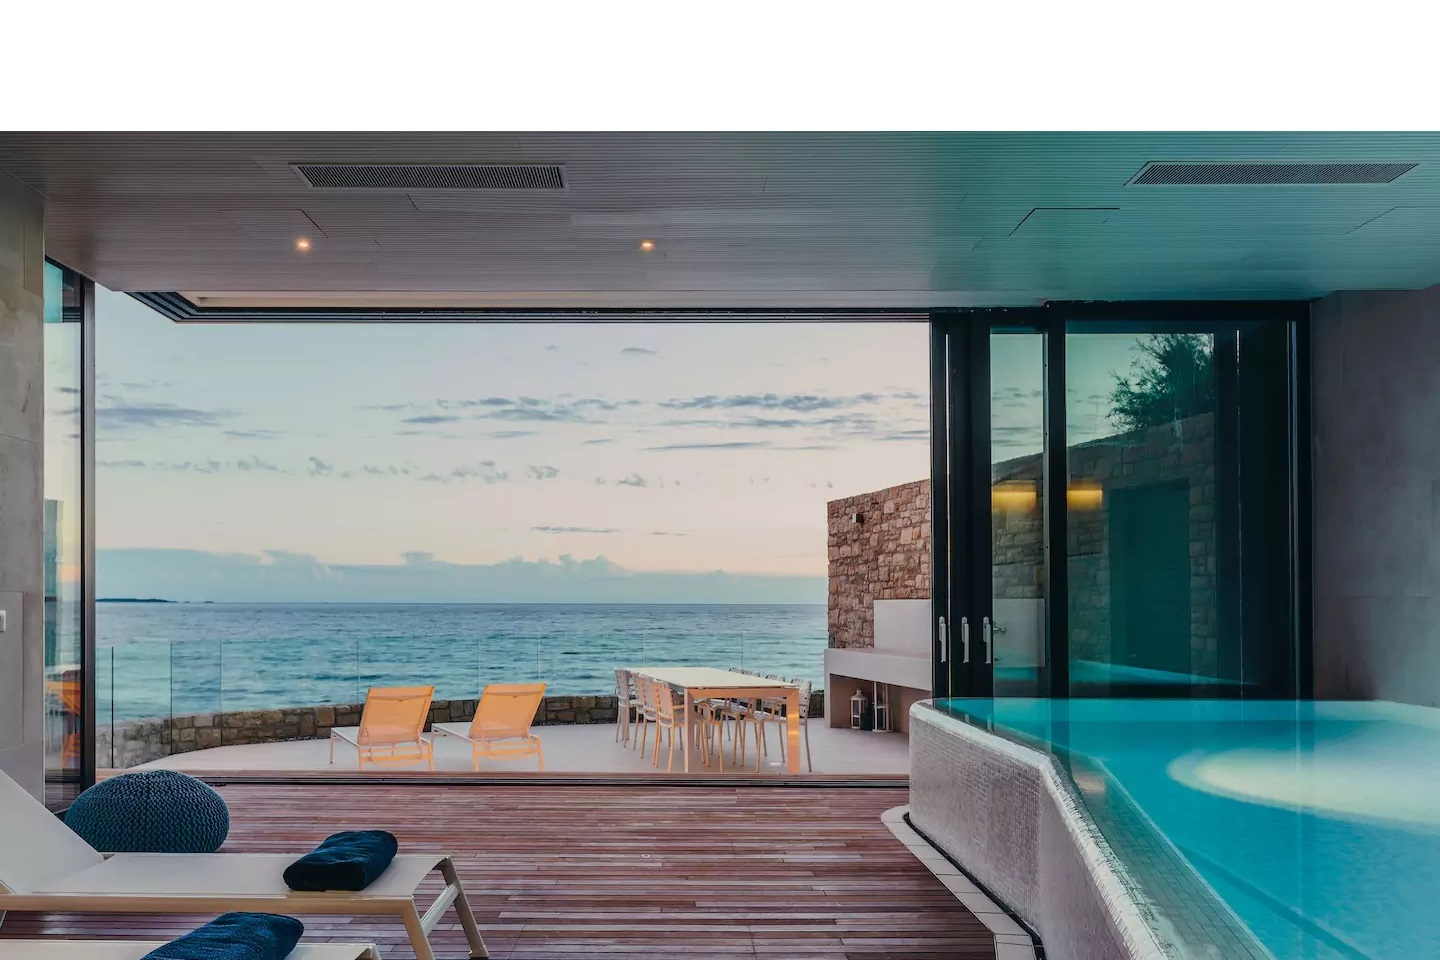 The luxury villa with its own infinity pool